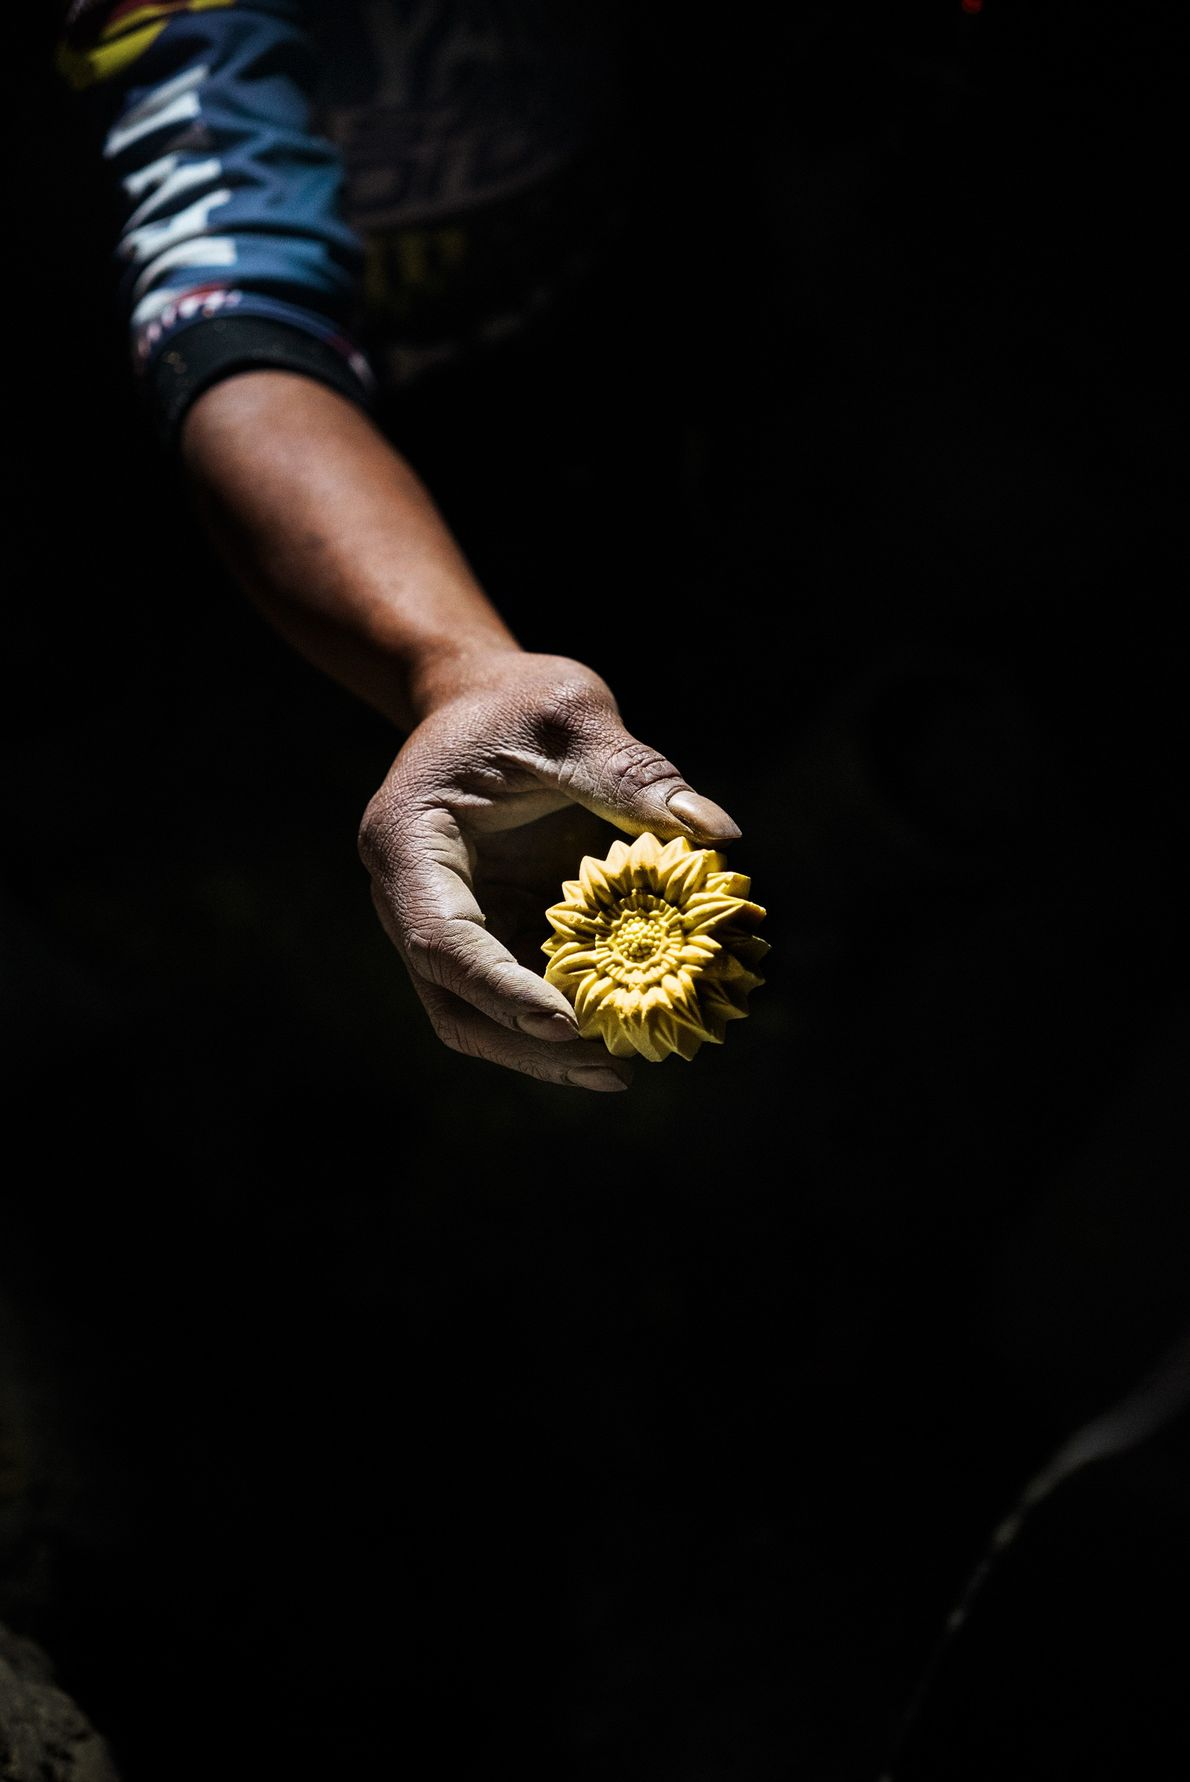 Forty-three-year-old Wito carves a flower from a block of sulphur to earn extra income from tourists.